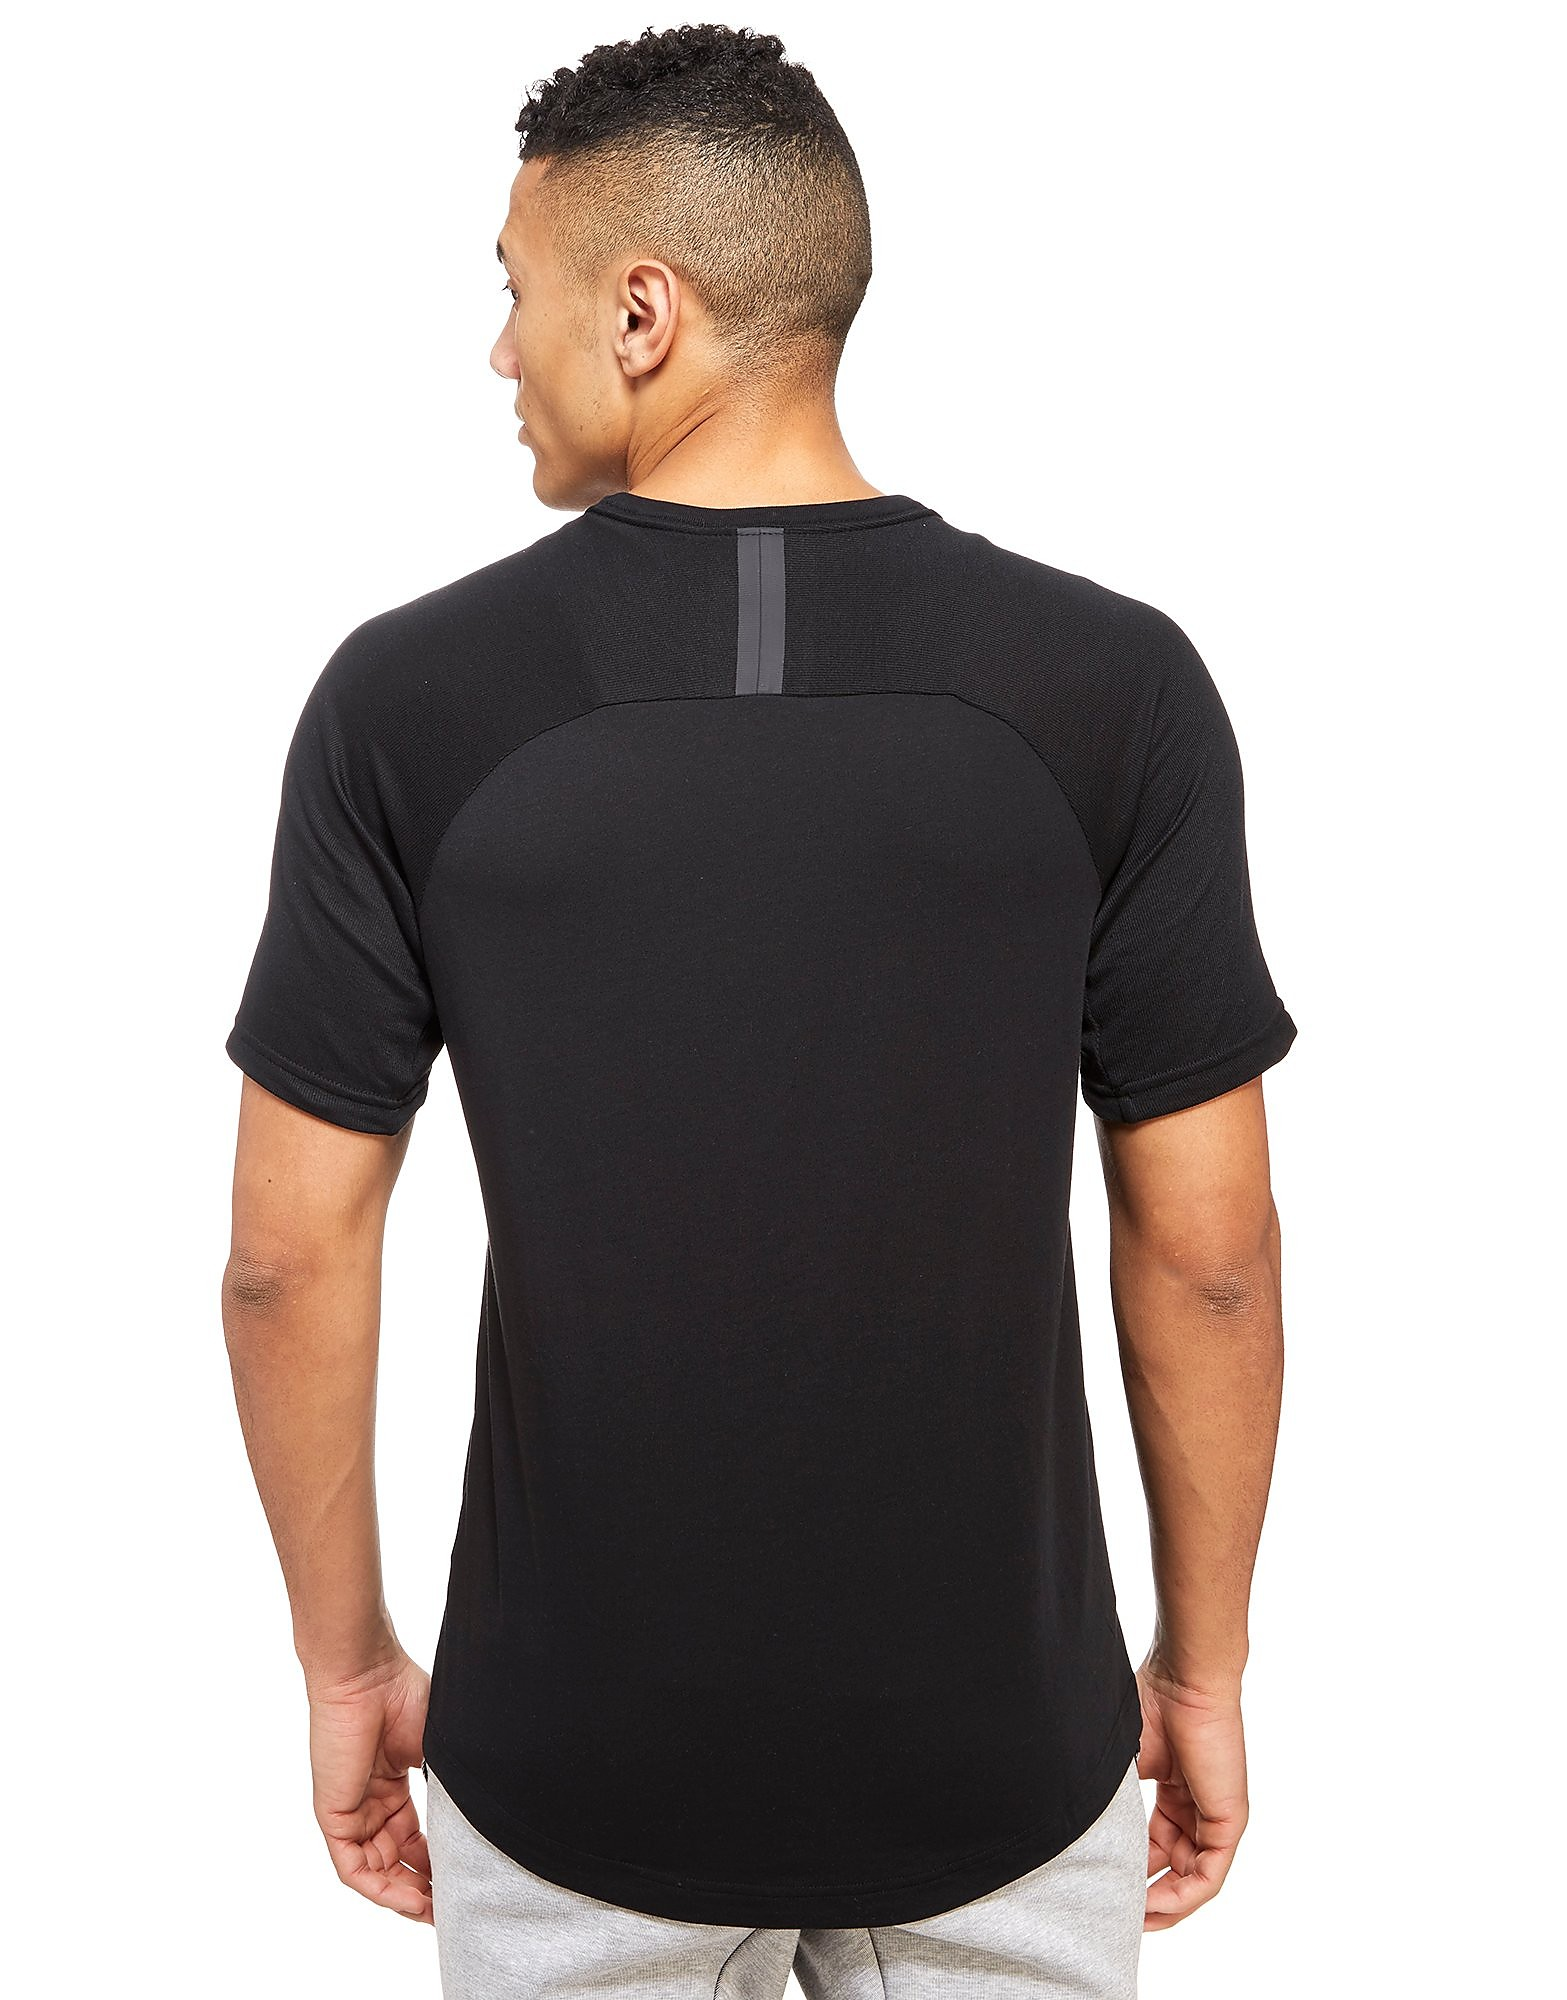 Nike Tech Bonded T-Shirt